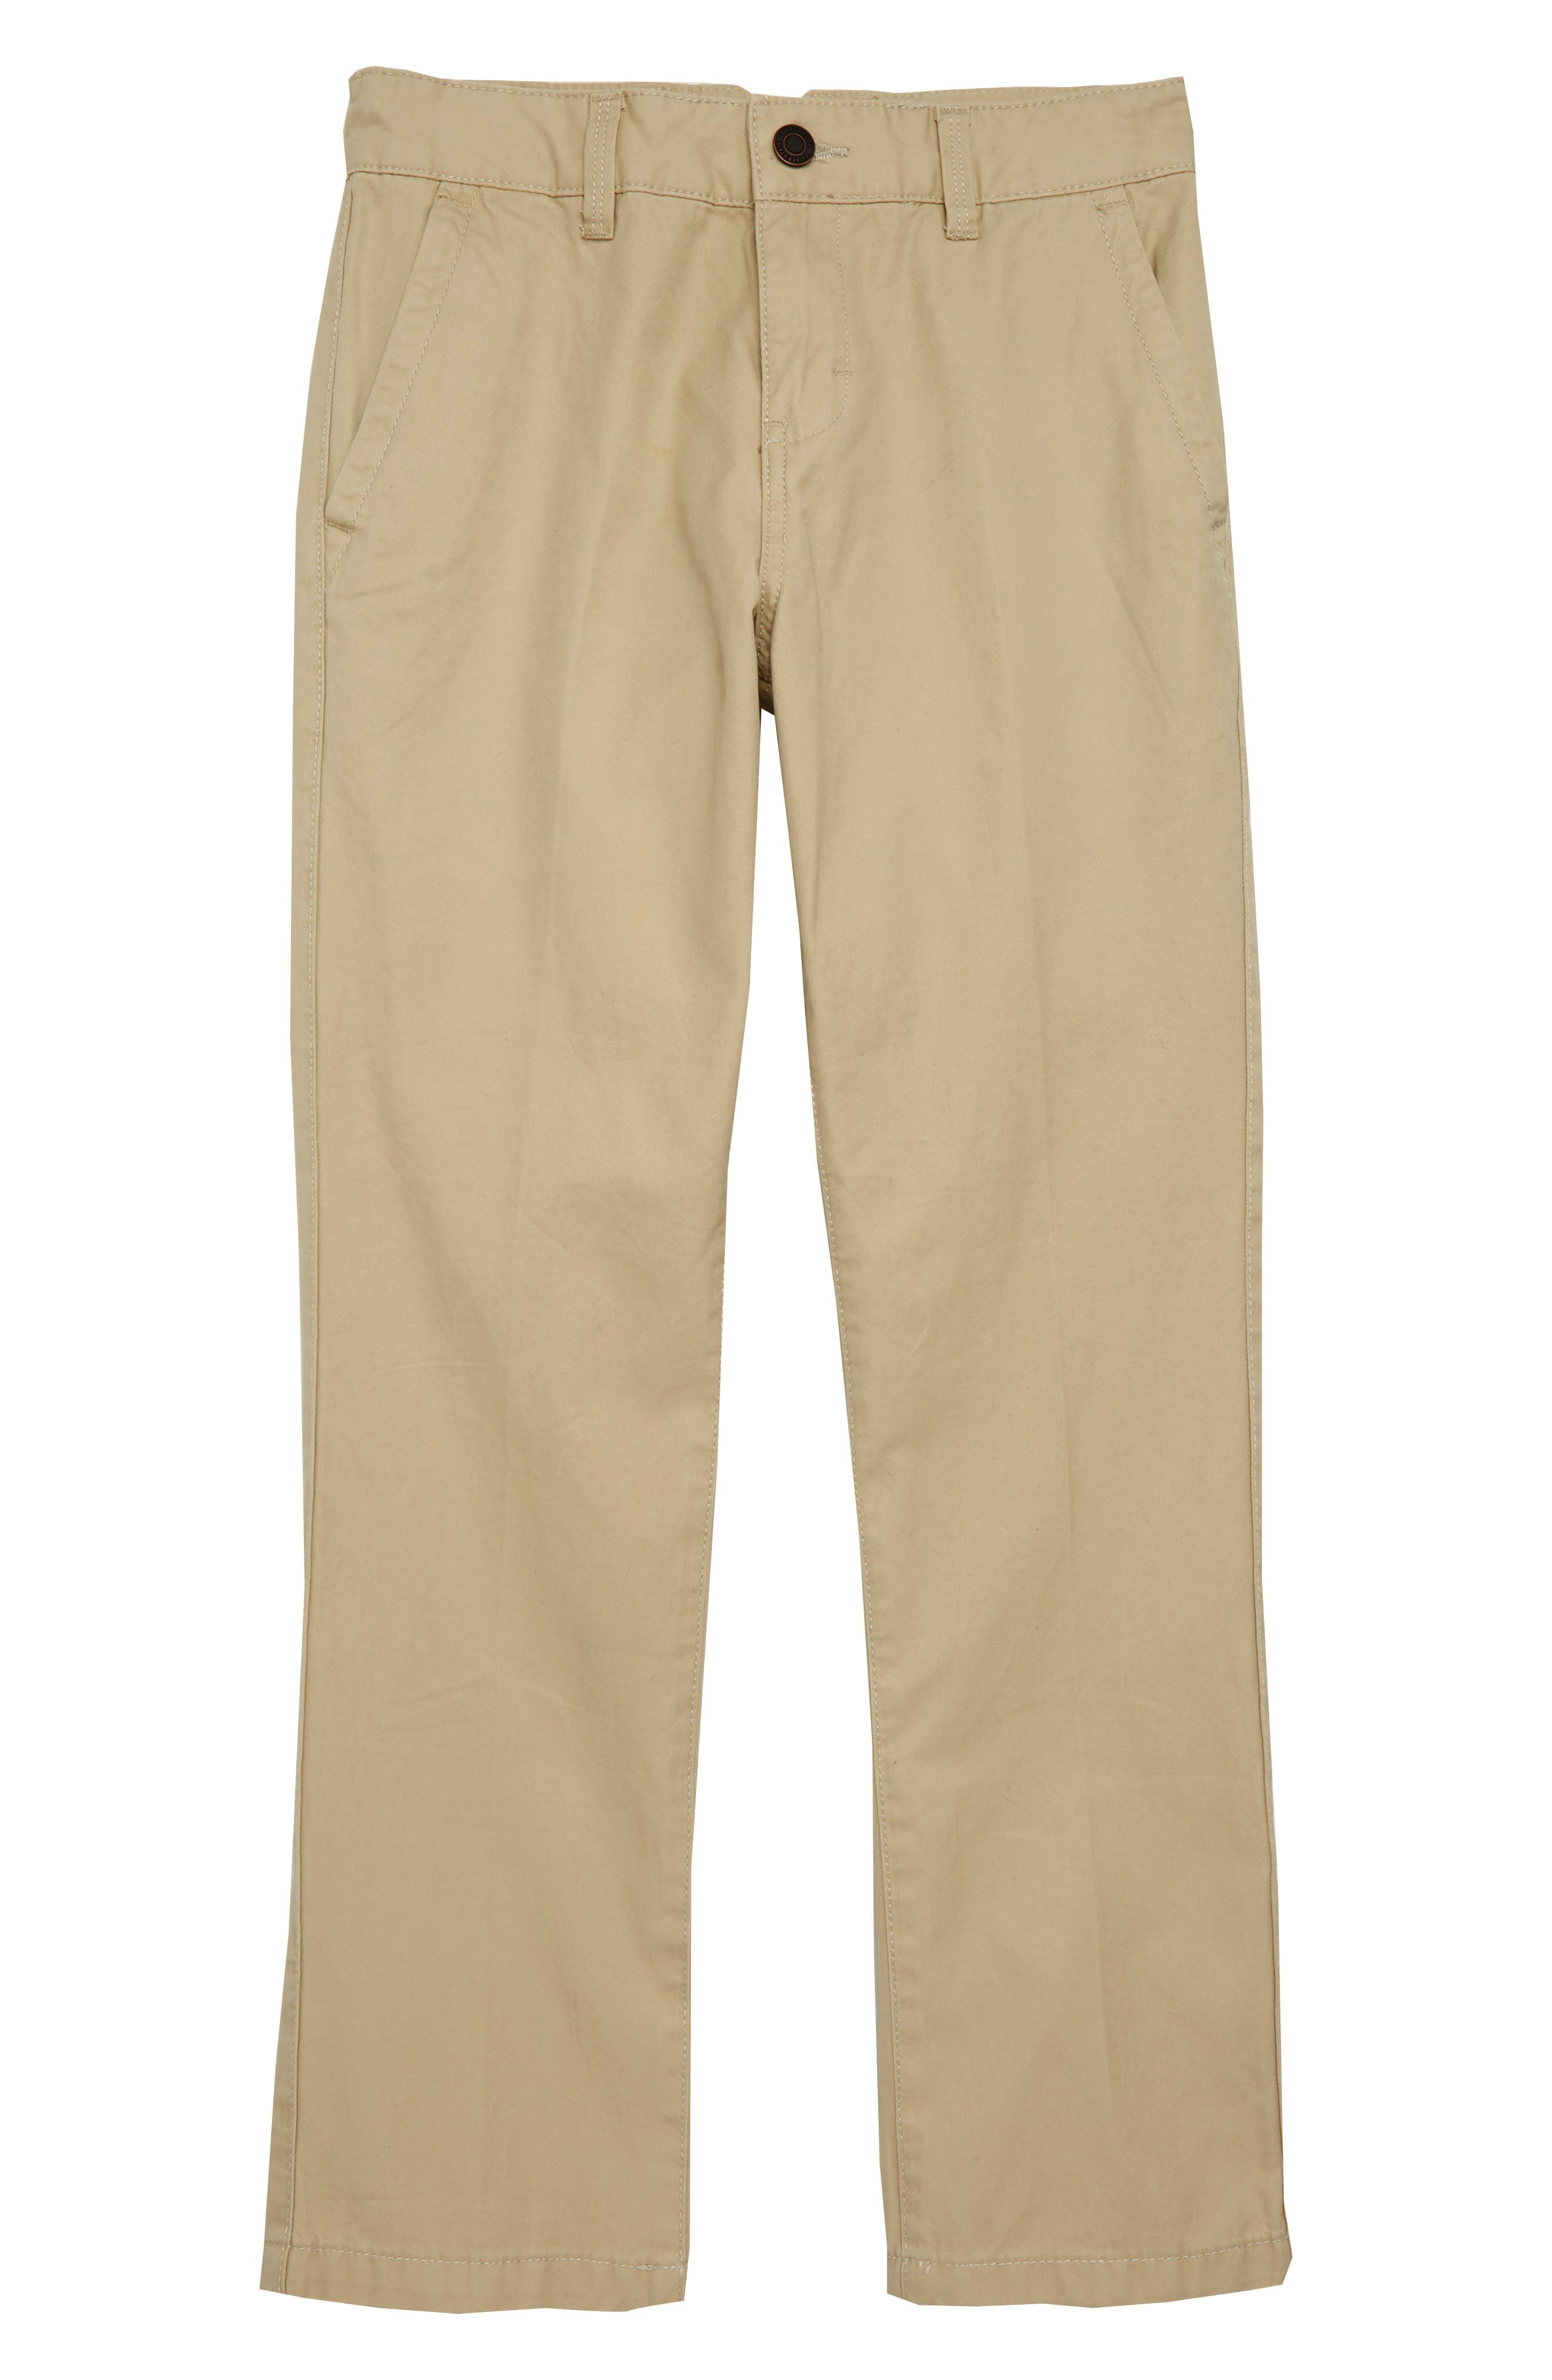 Chino Pants,                         Main,                         color, Tan Stock